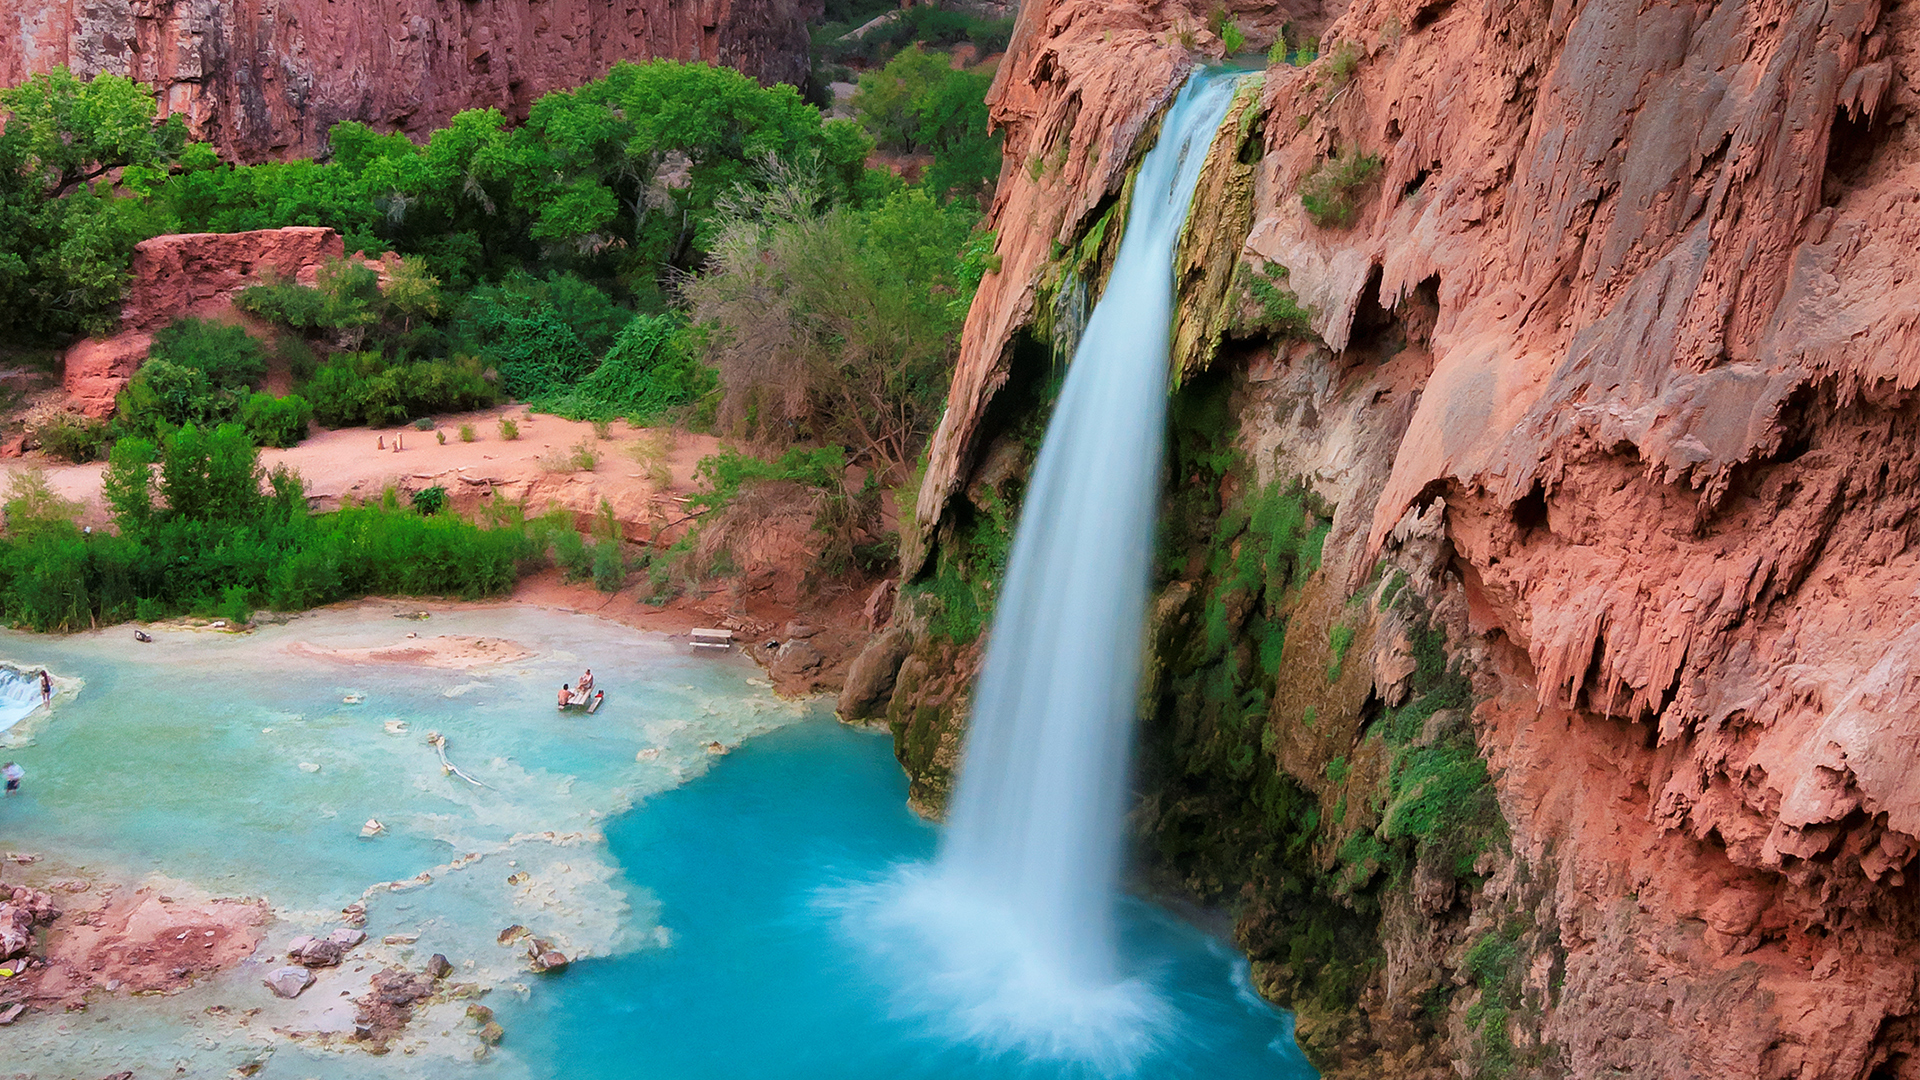 Peaceful day at Havasu Falls